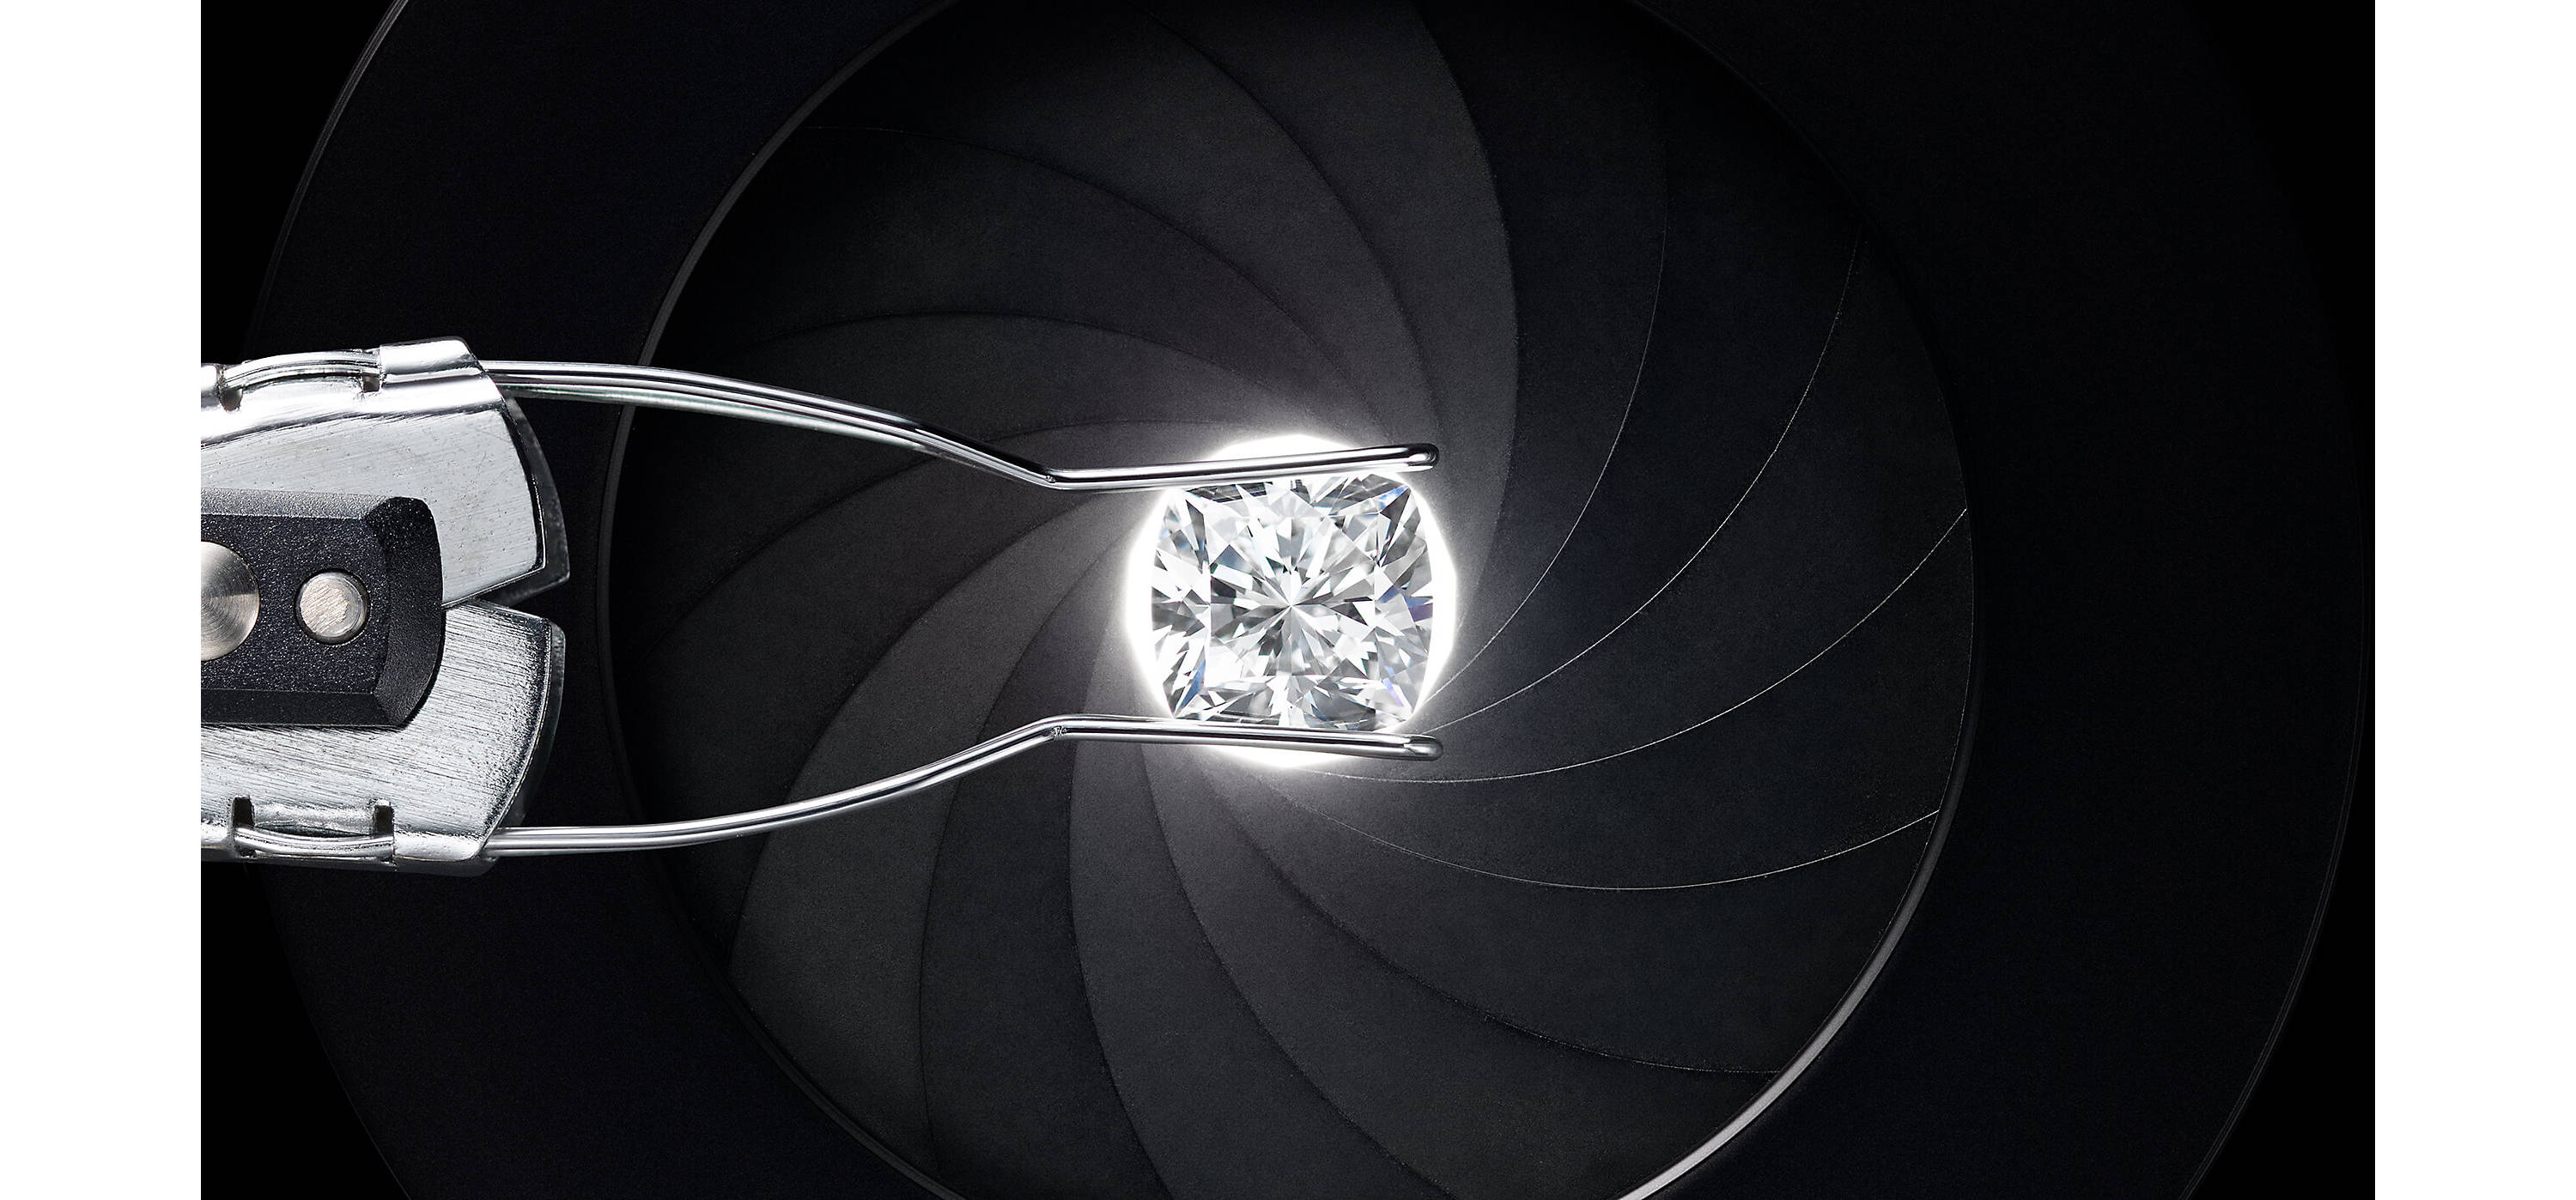 An overhead shot of a metal clamp holding a cushion-cut diamond above a white light shining from a black aperture.